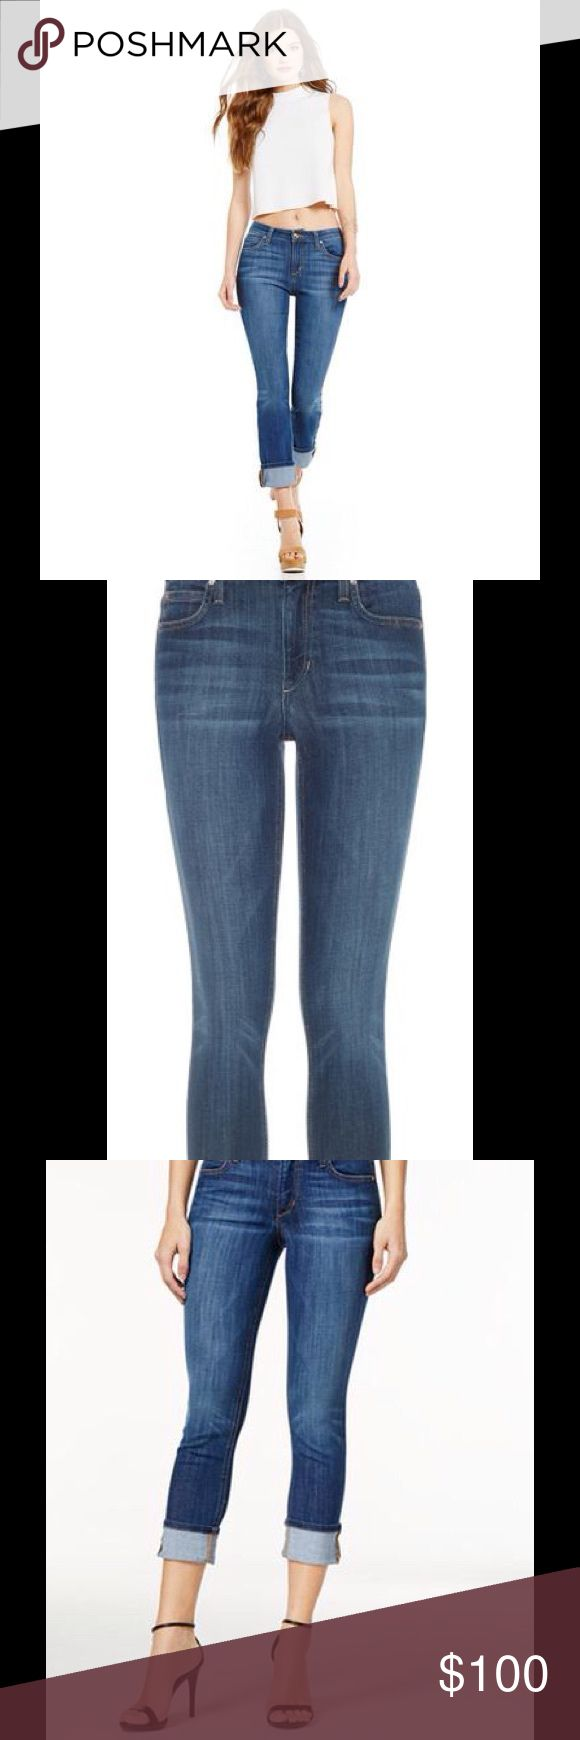 Jeans The crop jean that keeps you cool in the summer!!! A chic go-to, these cuffed cropped jeans from Joe's Jeans are sure to be your favorites with a crisp blouse or tee and heels Joe's Jeans Jeans Skinny